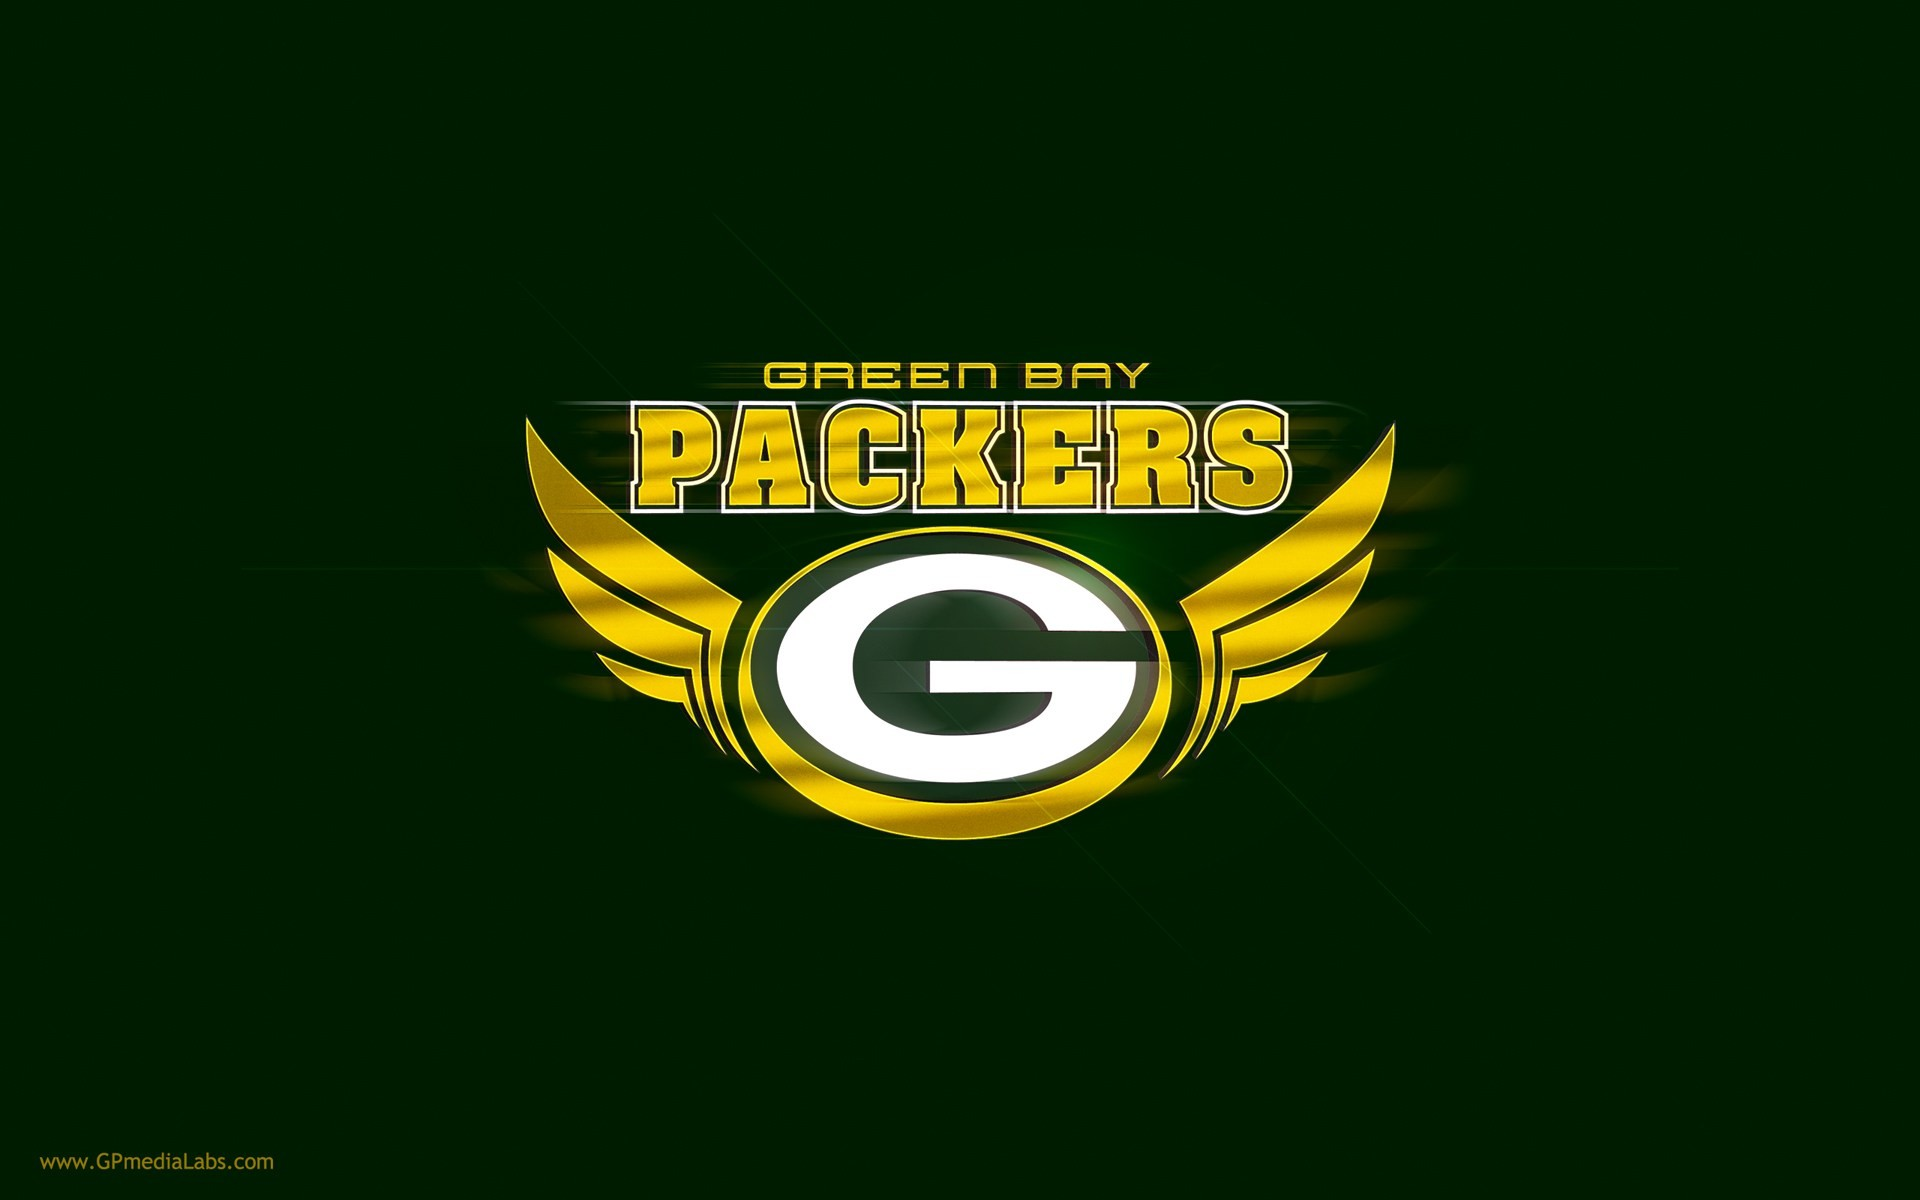 Google Image Result For Http Www Gpmedialabs Com Packers. Green bay packers  iphone wallpaper free …